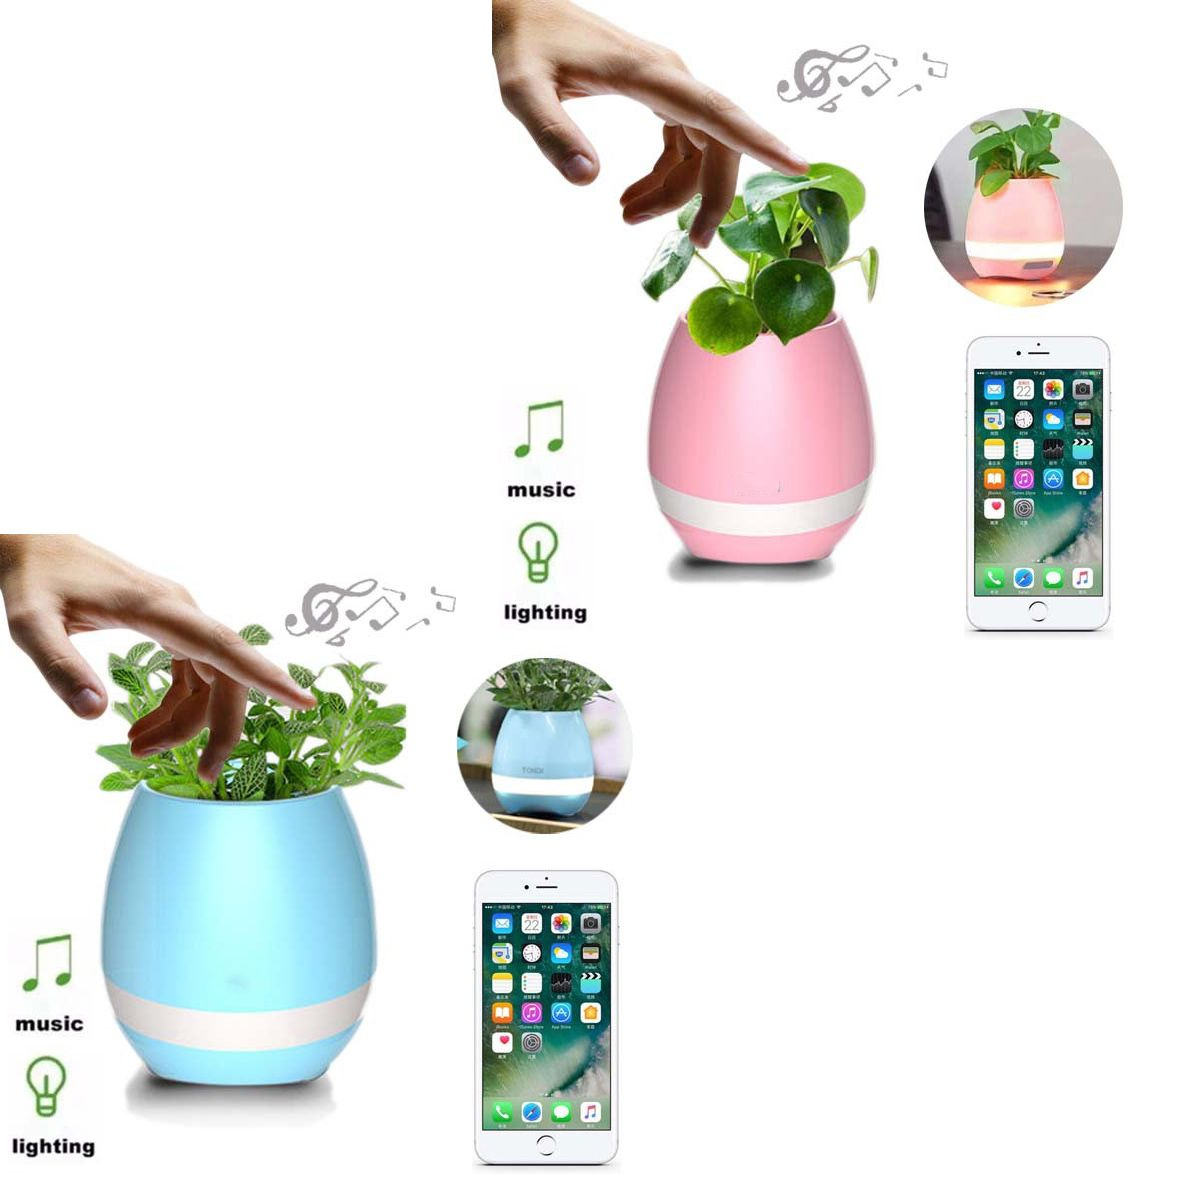 Kit 4 Vaso de Planta Musical Bluetooth Som Recarregavel